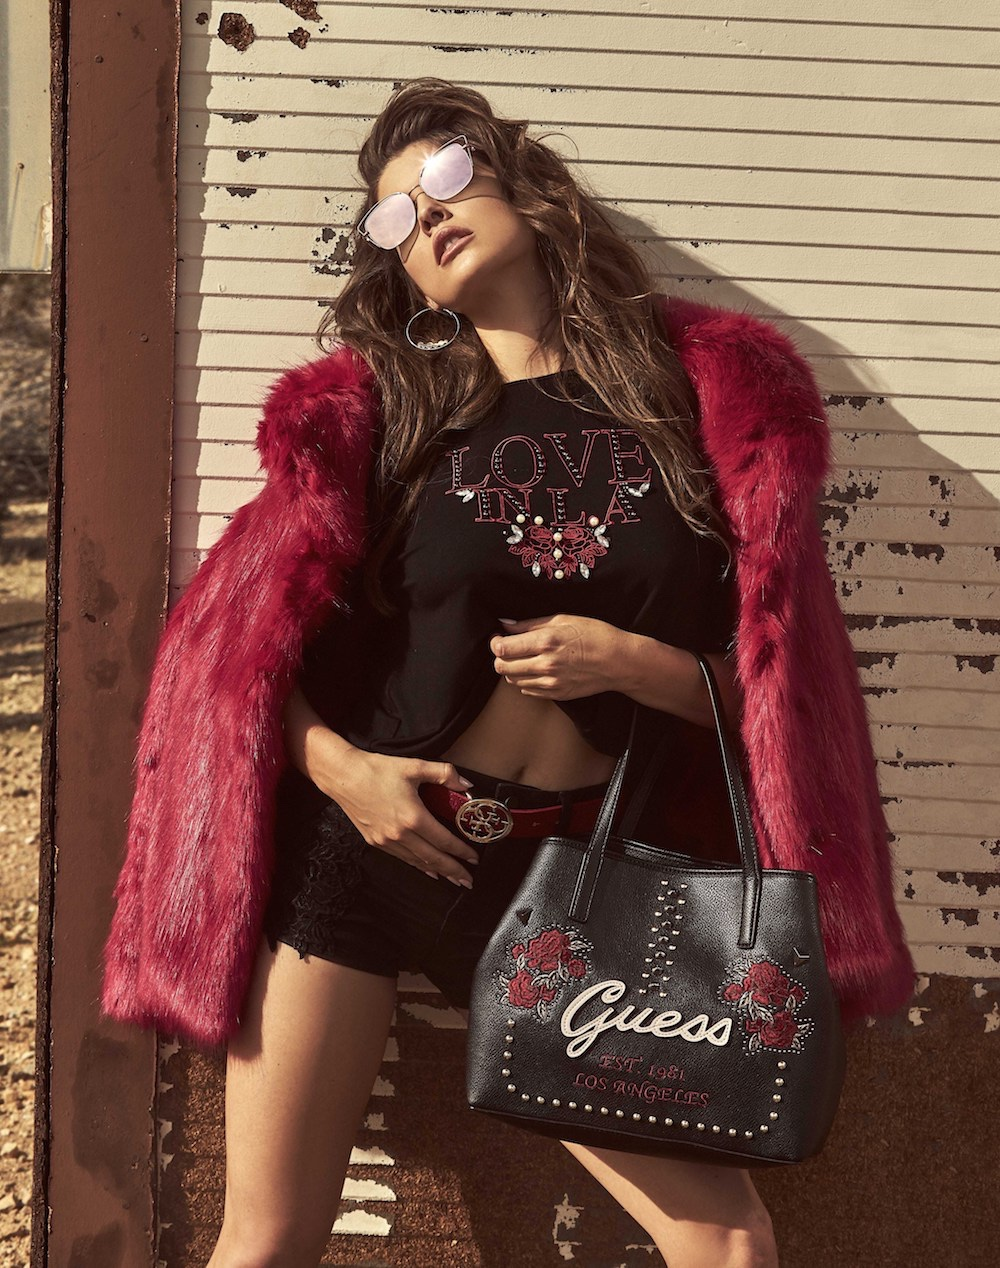 La collezione di accessori AI 2017 di Guess, un mix match